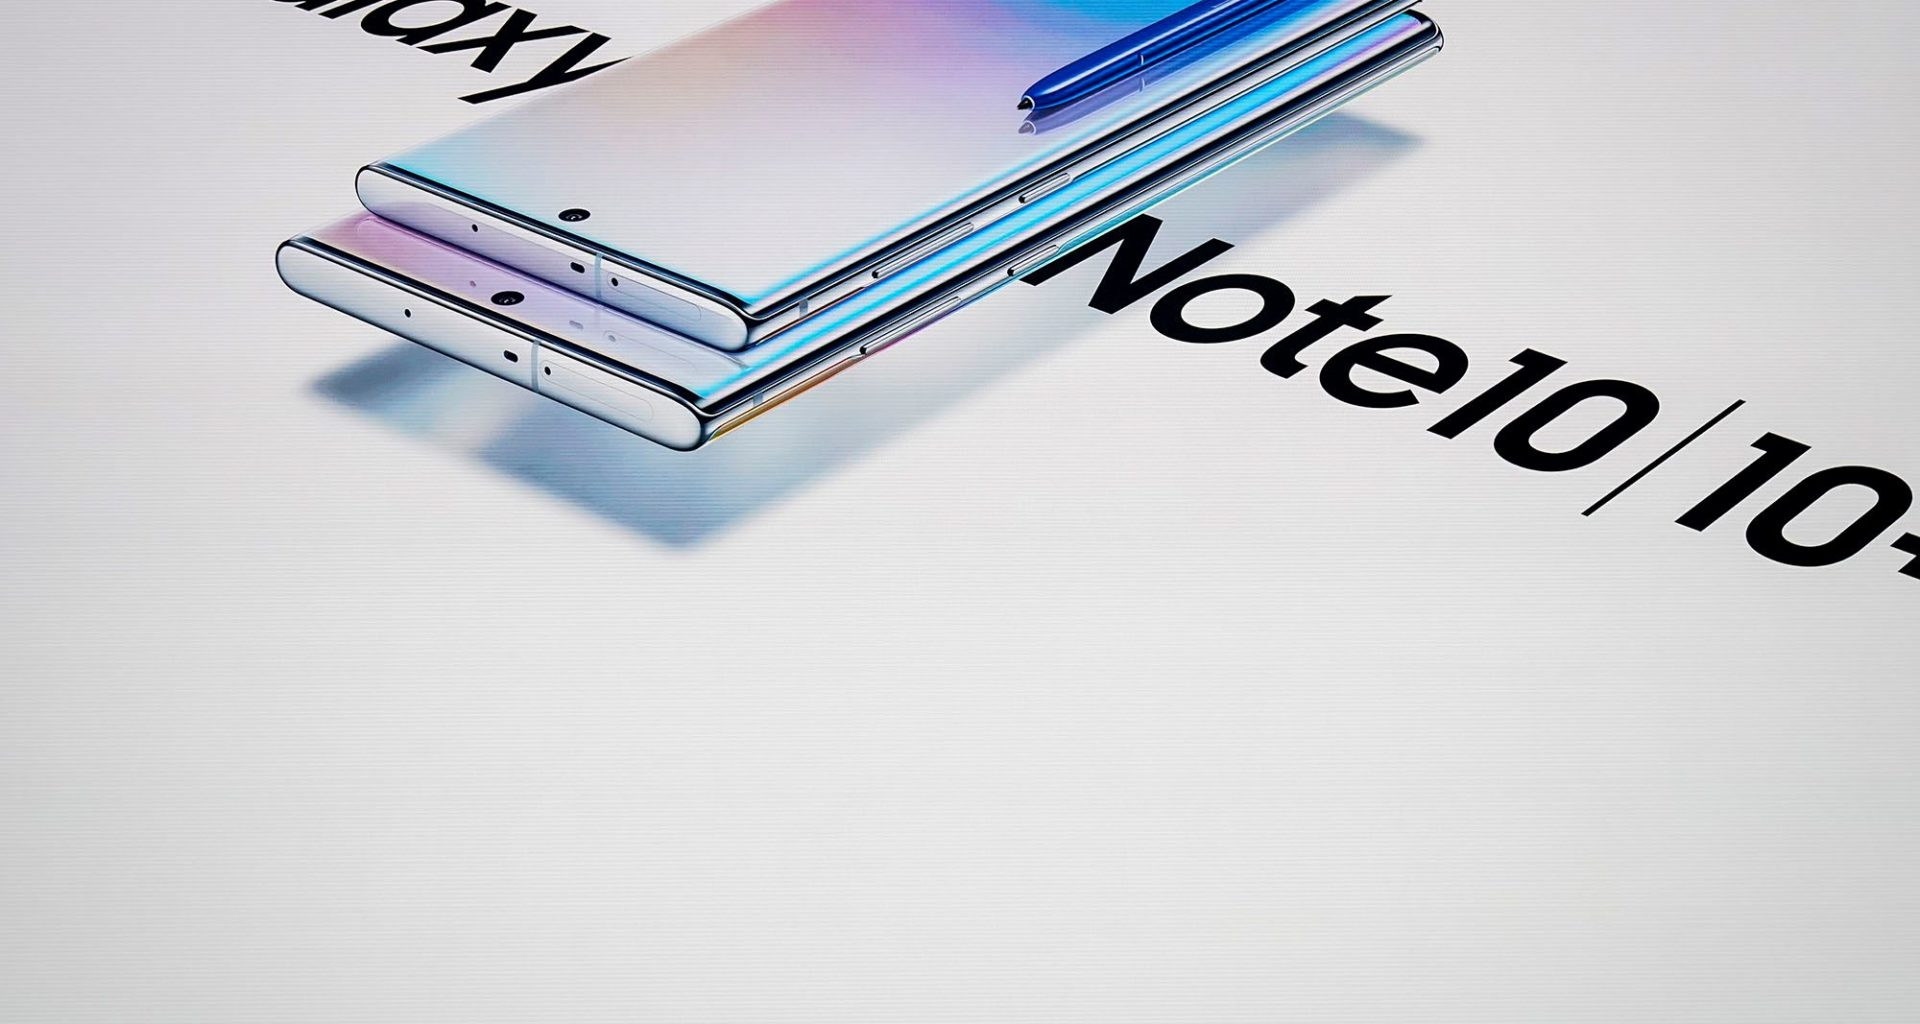 Samsung might discontinue Galaxy Note series due to a fall in demand